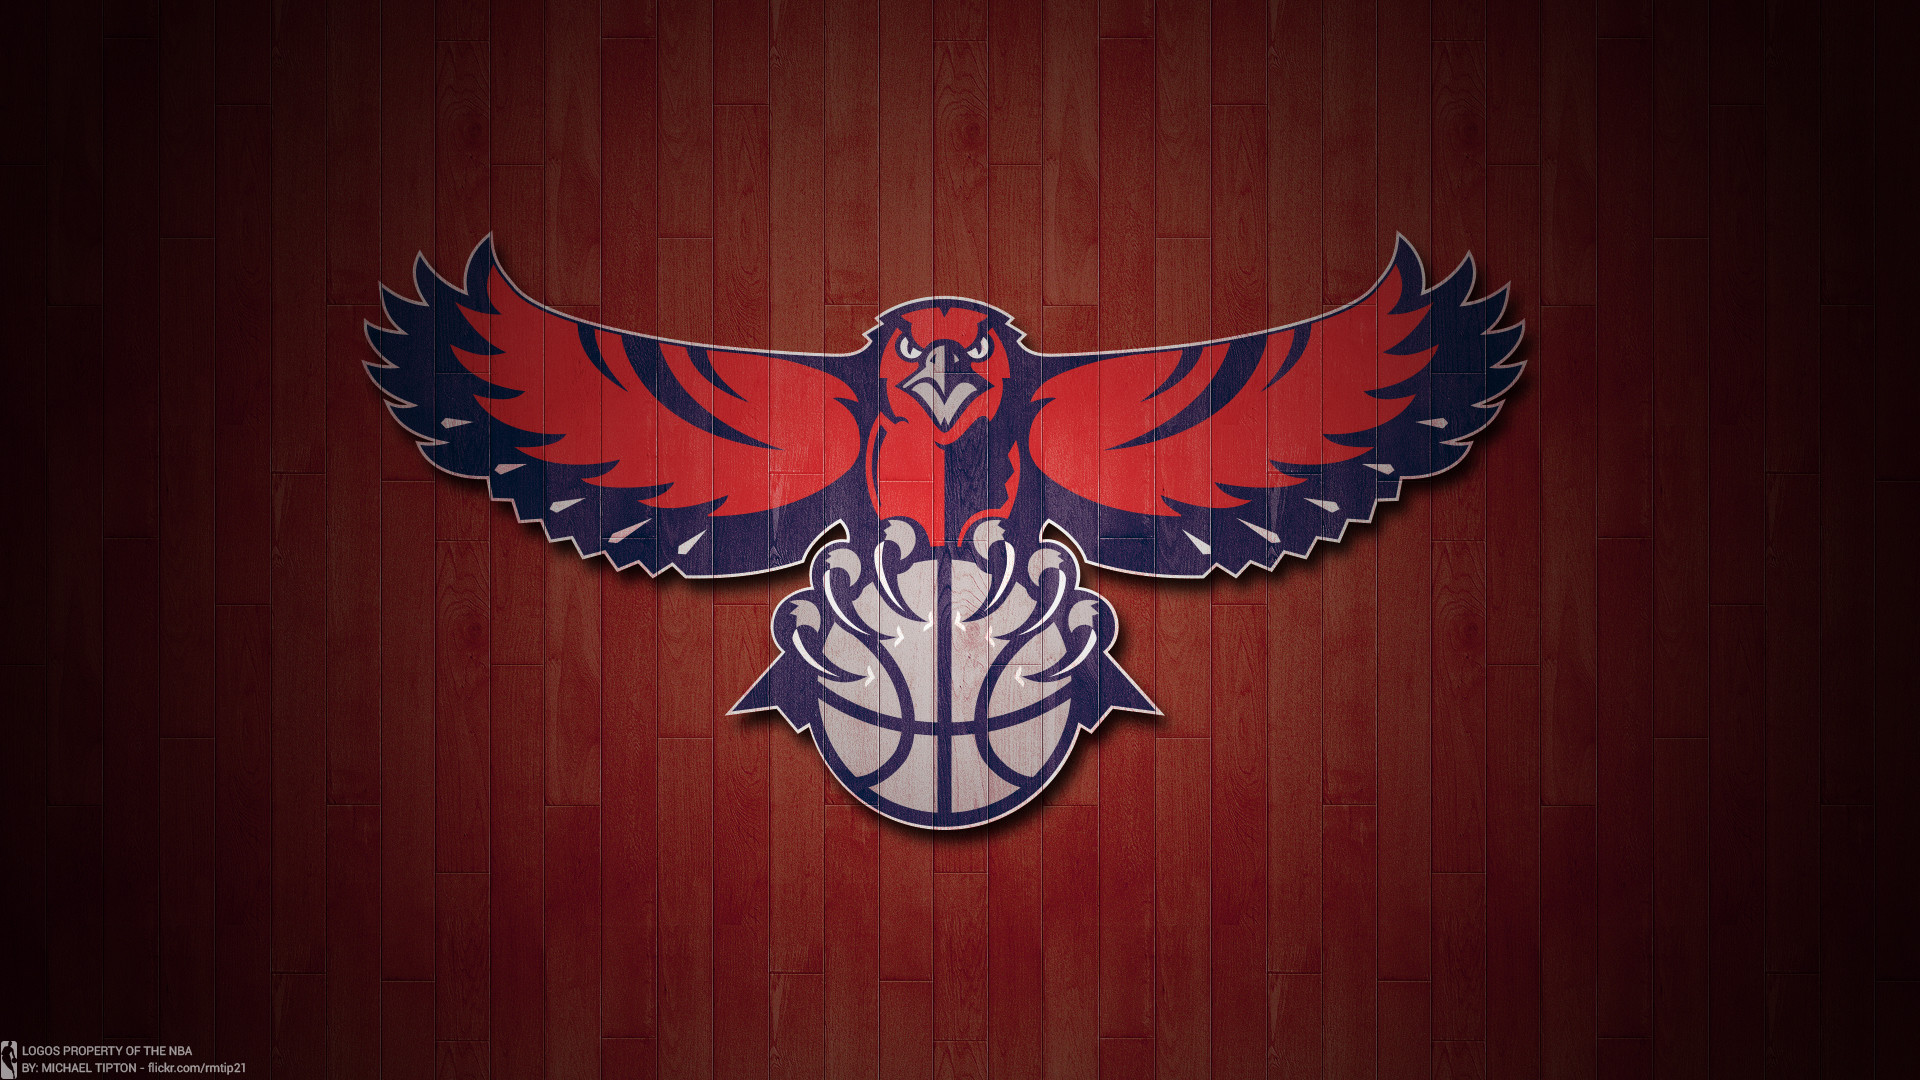 Nba Team Logos Wallpapers 2017 69 Background Pictures